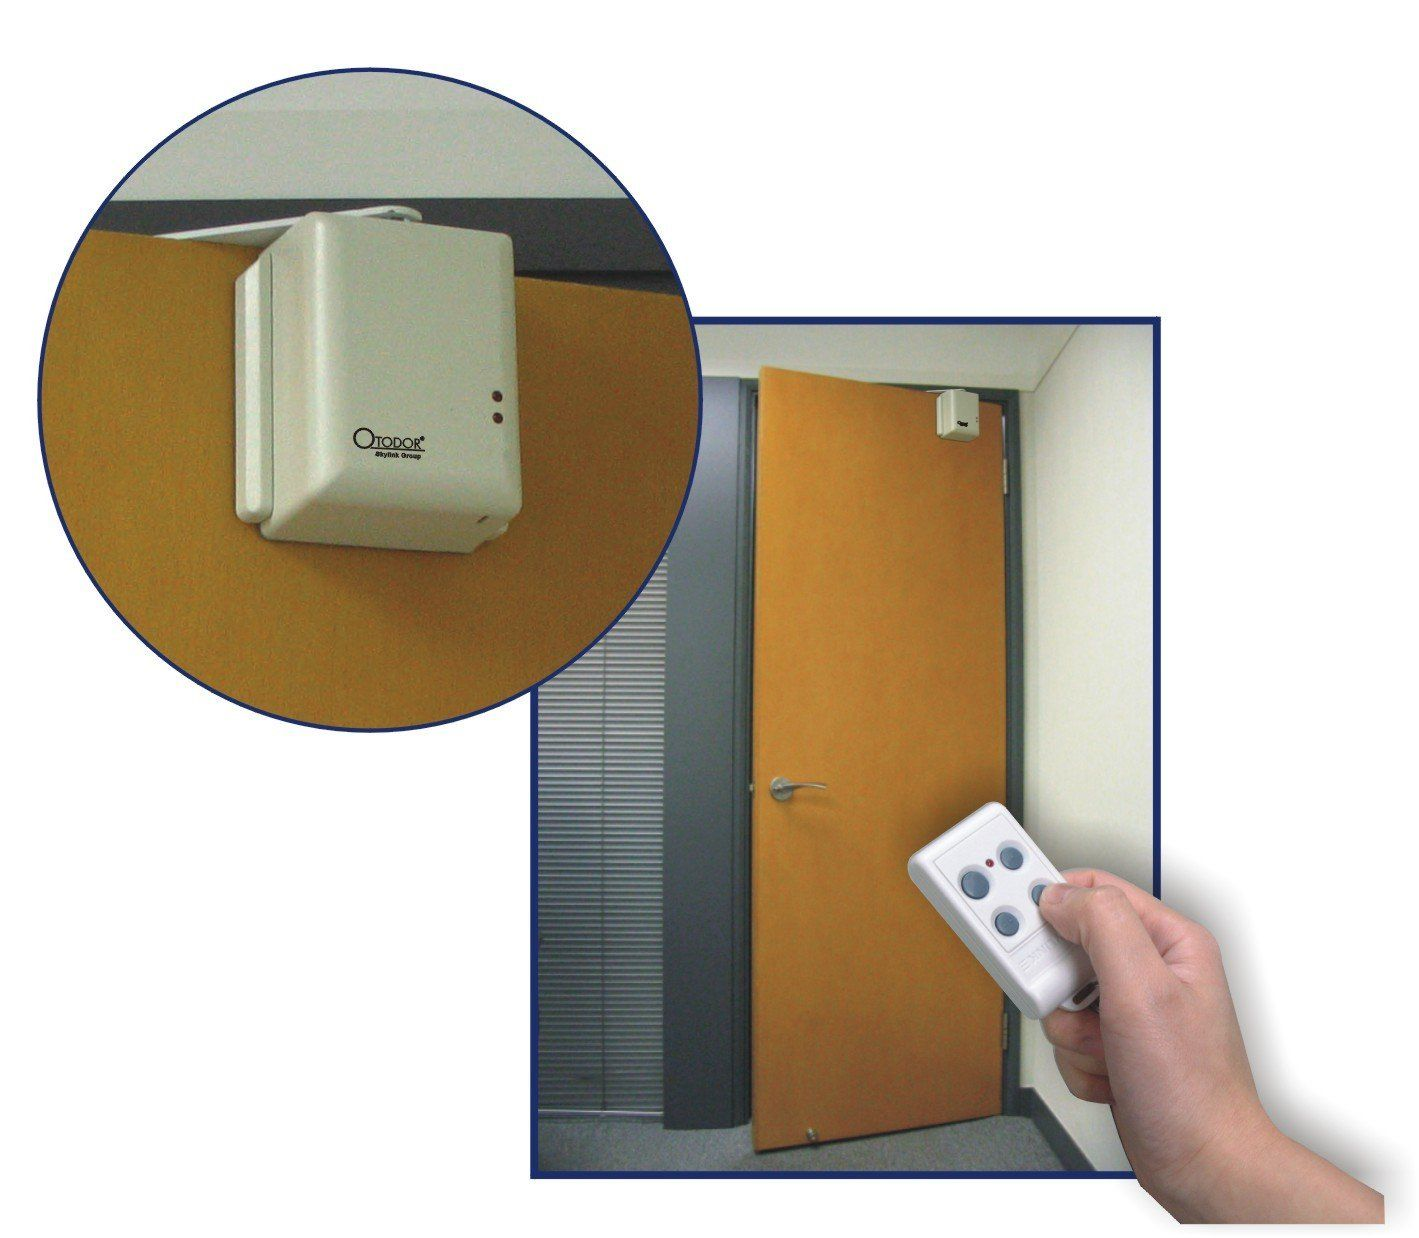 Delightful Open And Close A Standard Swing Door By Remote Control, Using The Skylink  Automatic Swing